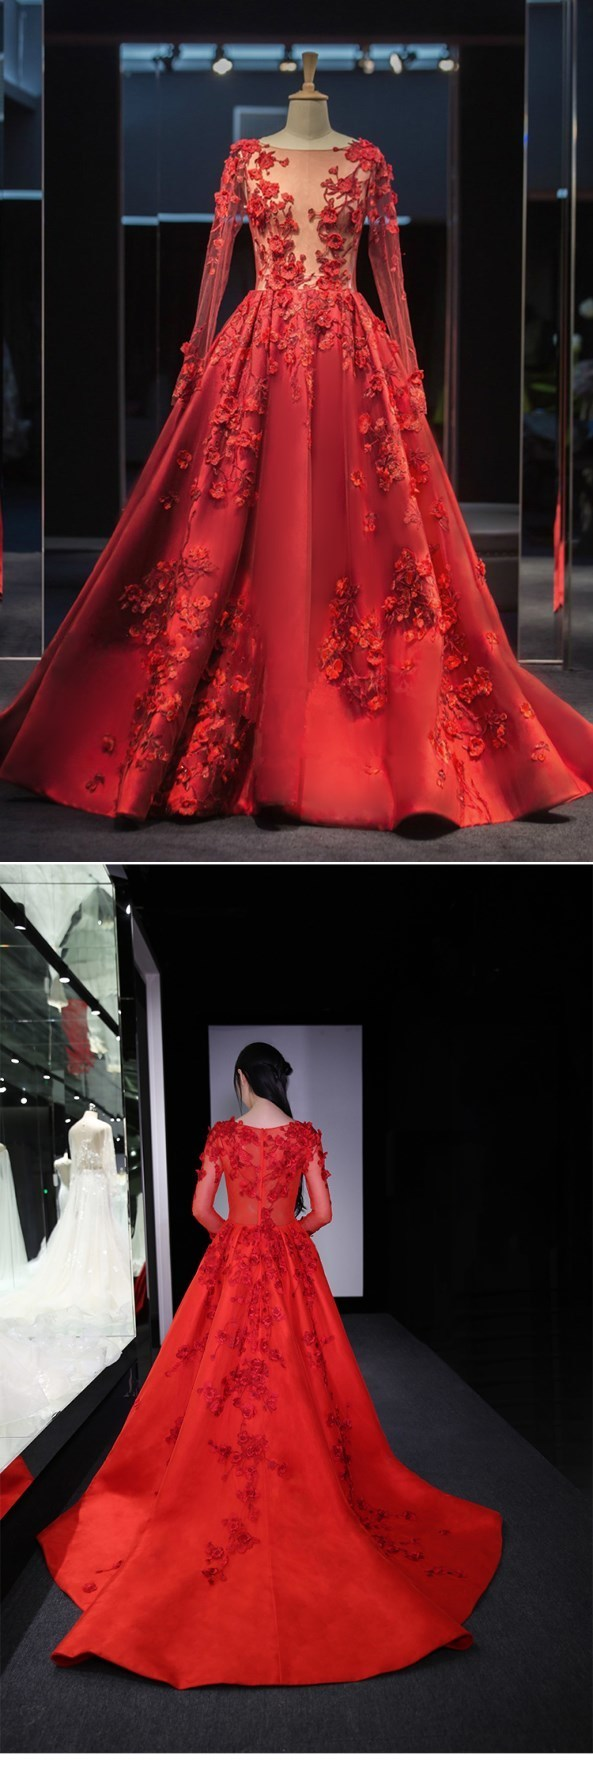 New Long Sleeve ball gowns Hand Made Tulle Back Tail Prom Dresses, Prom Dress